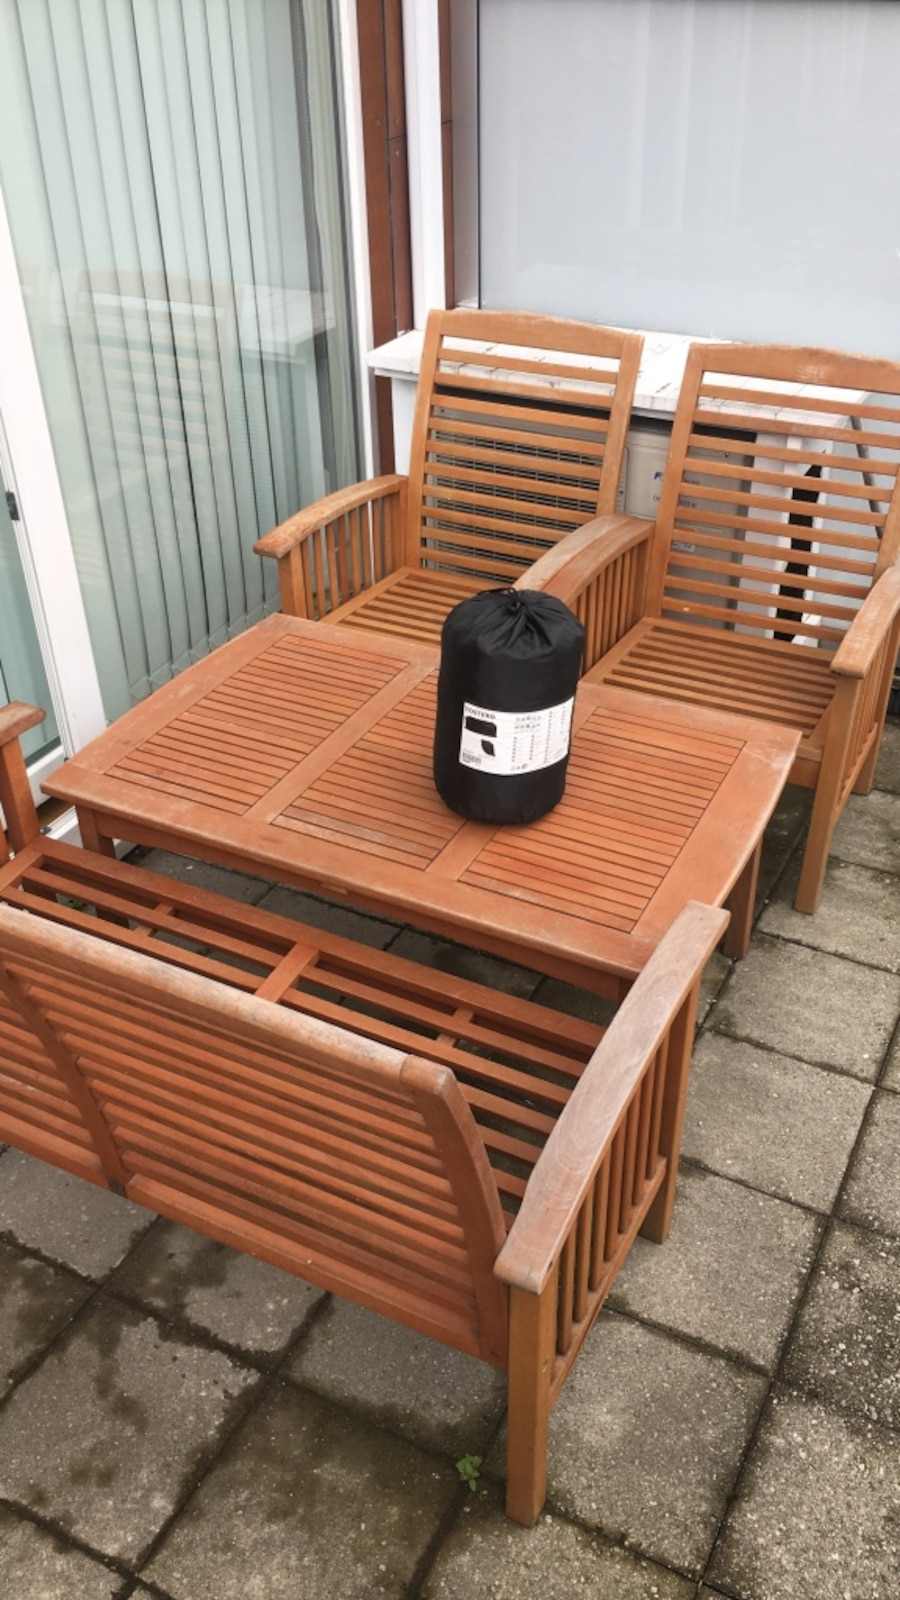 Garden furniture and winter cover.